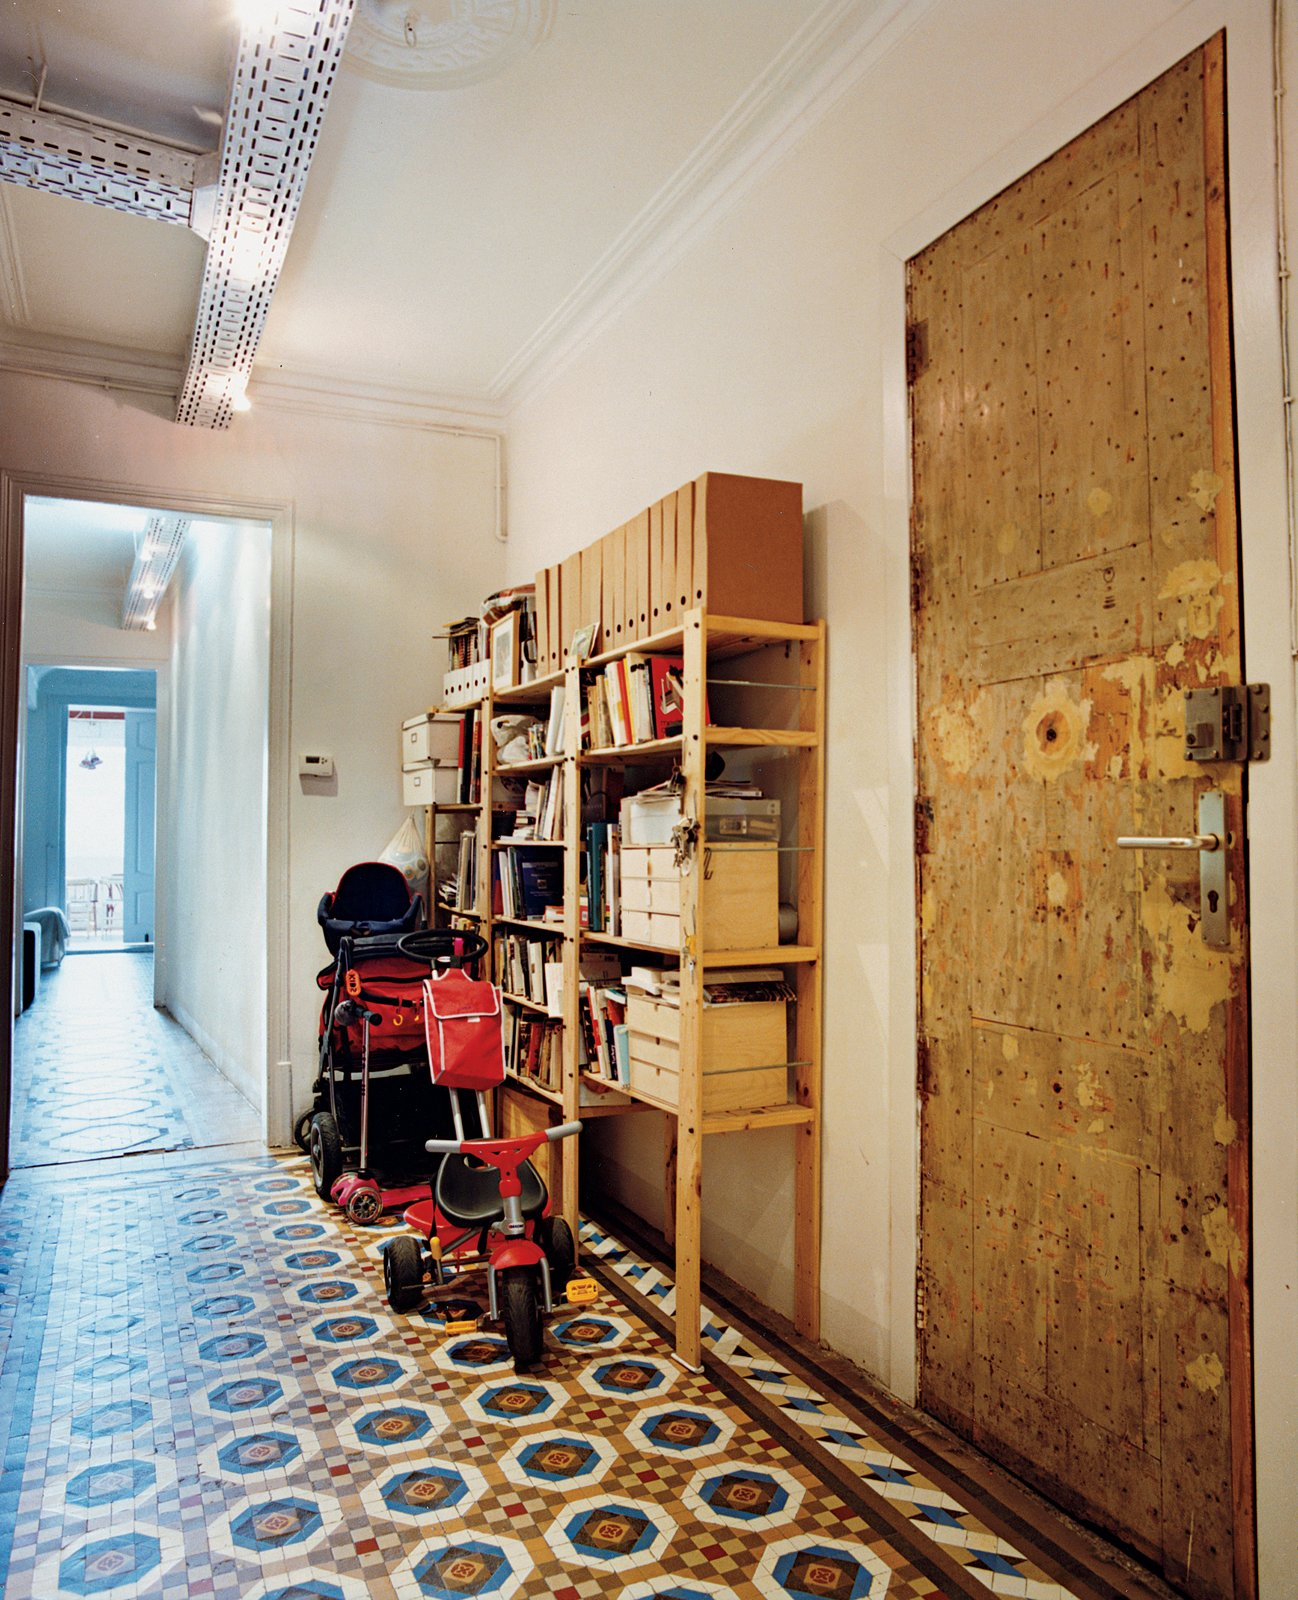 The front door hallway flooring features original turn-of-the-century floor tiles in this renovated first-floor apartment in Barcelona, Spain.  Photo 5 of 6 in Renovating Old and New in Barcelona